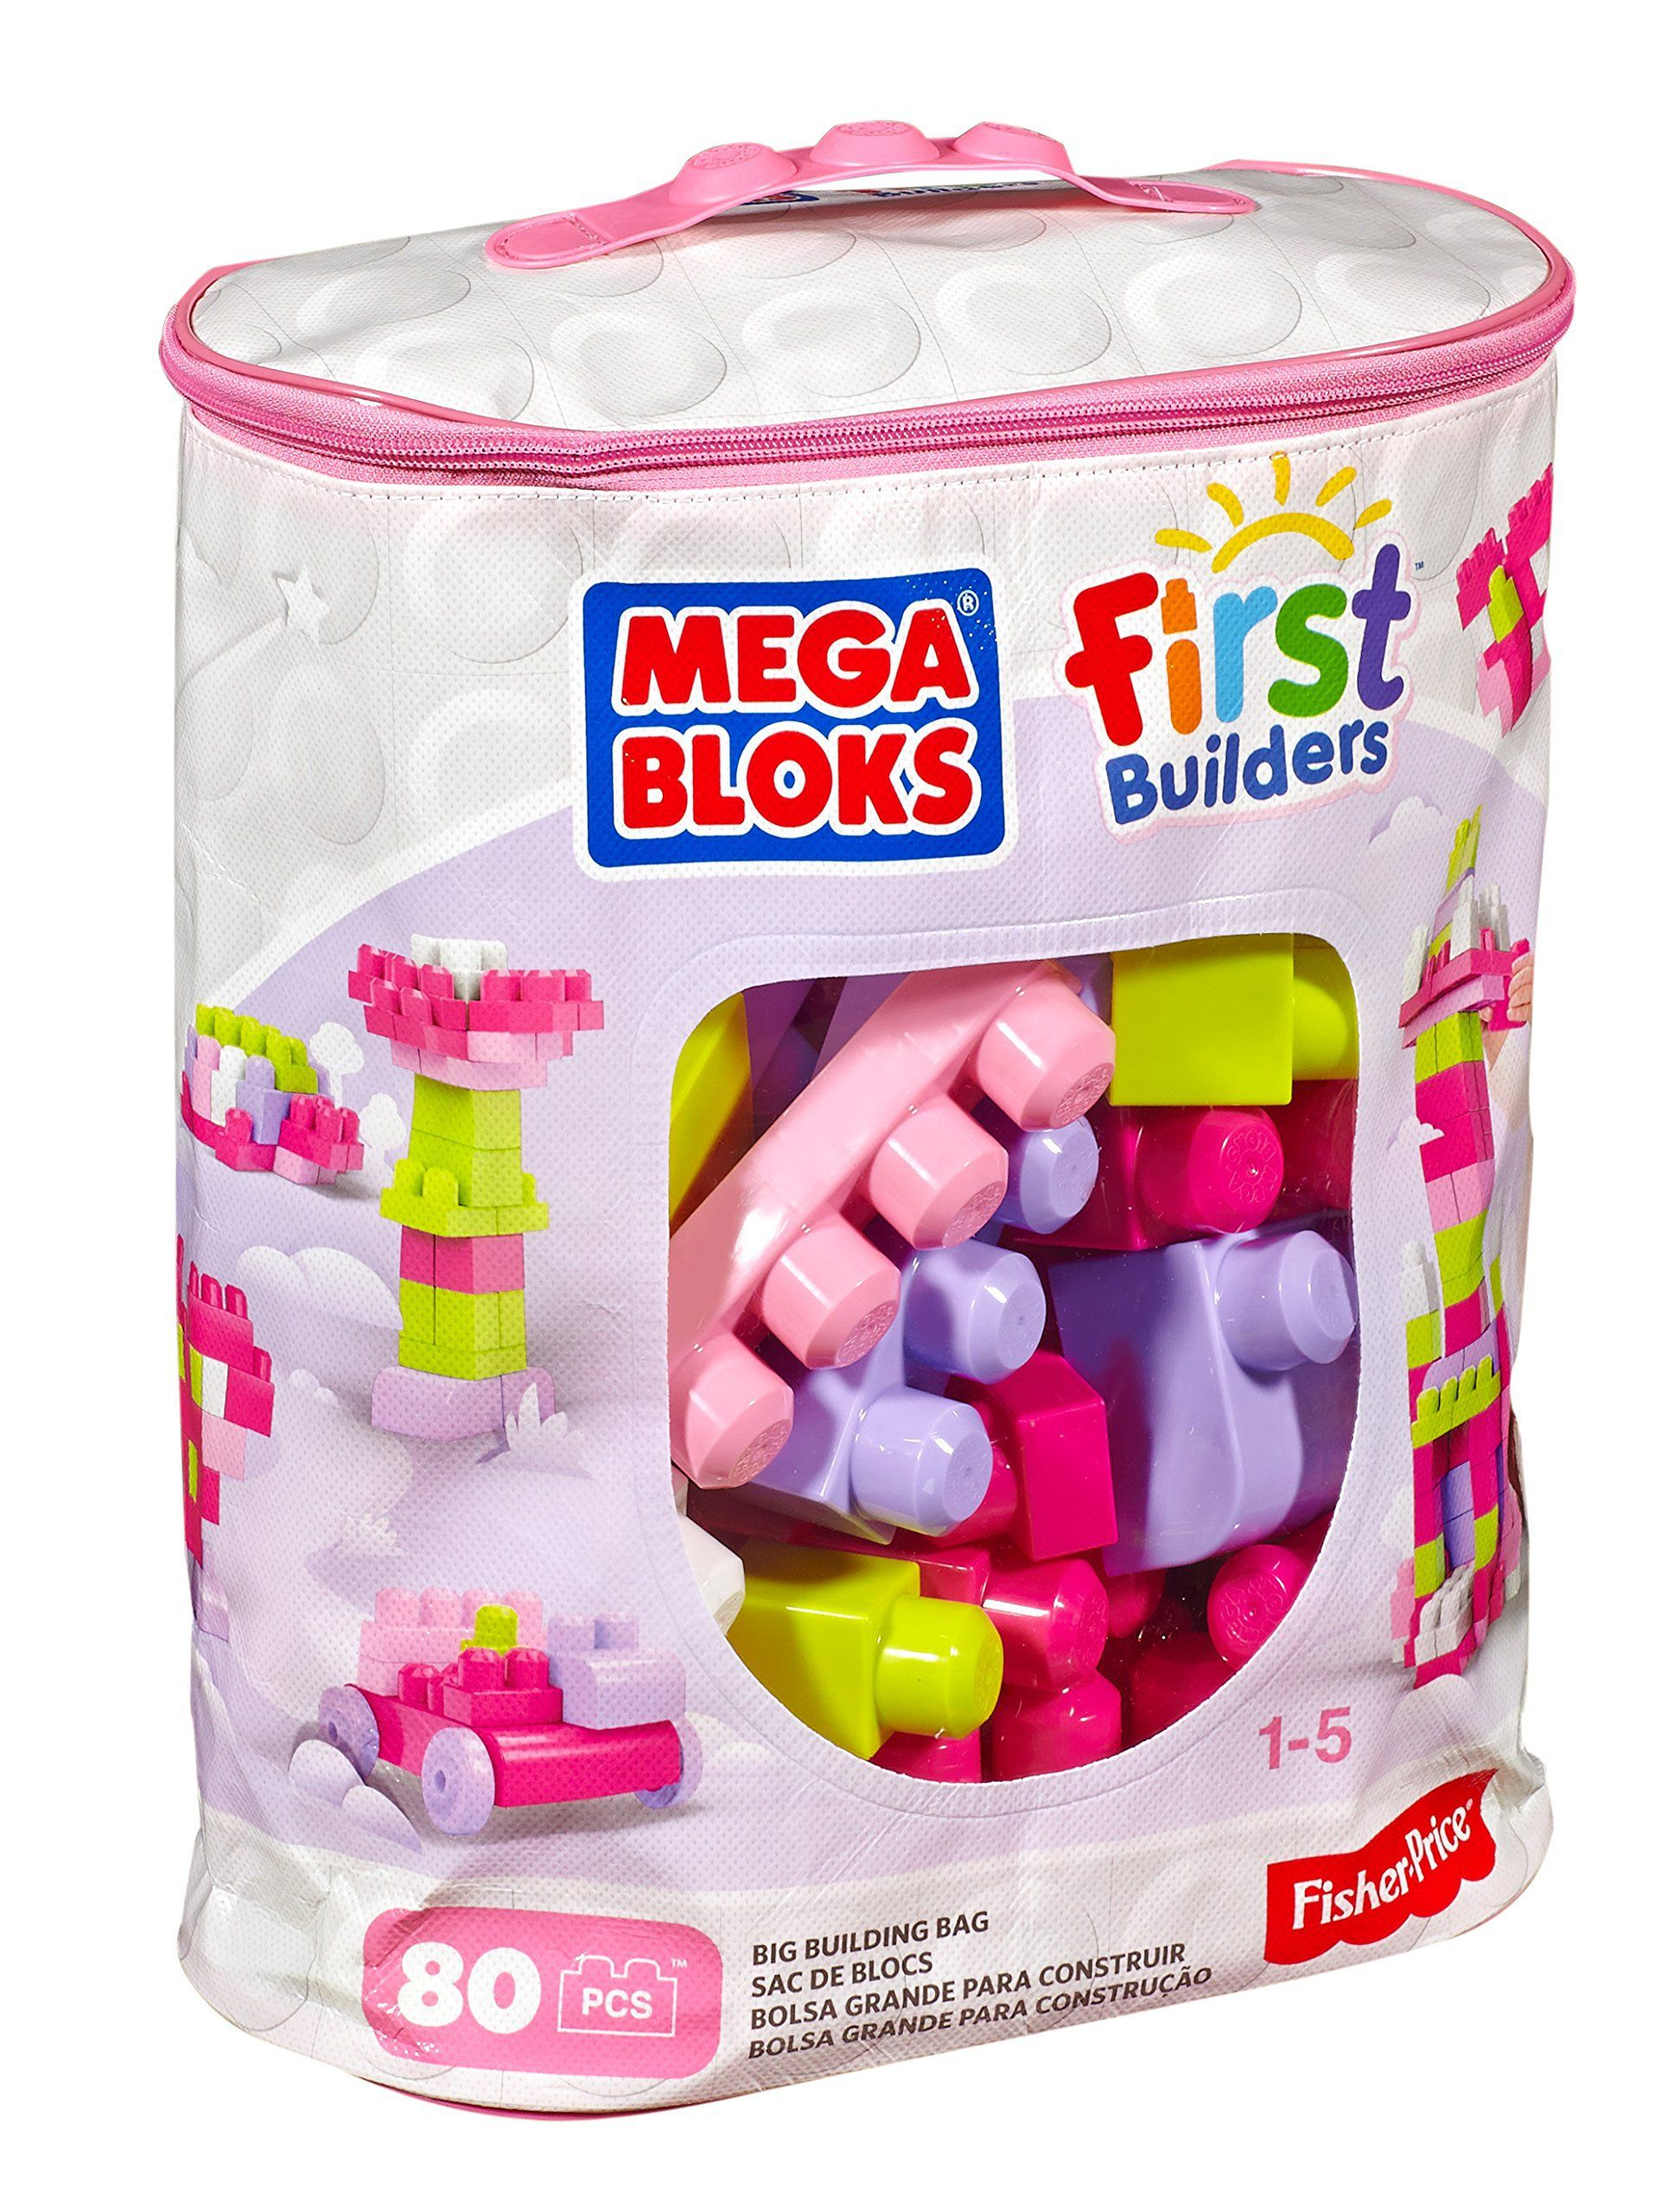 Toys for 1 Year Old Girl Birthday Christmas Gifts in 2017